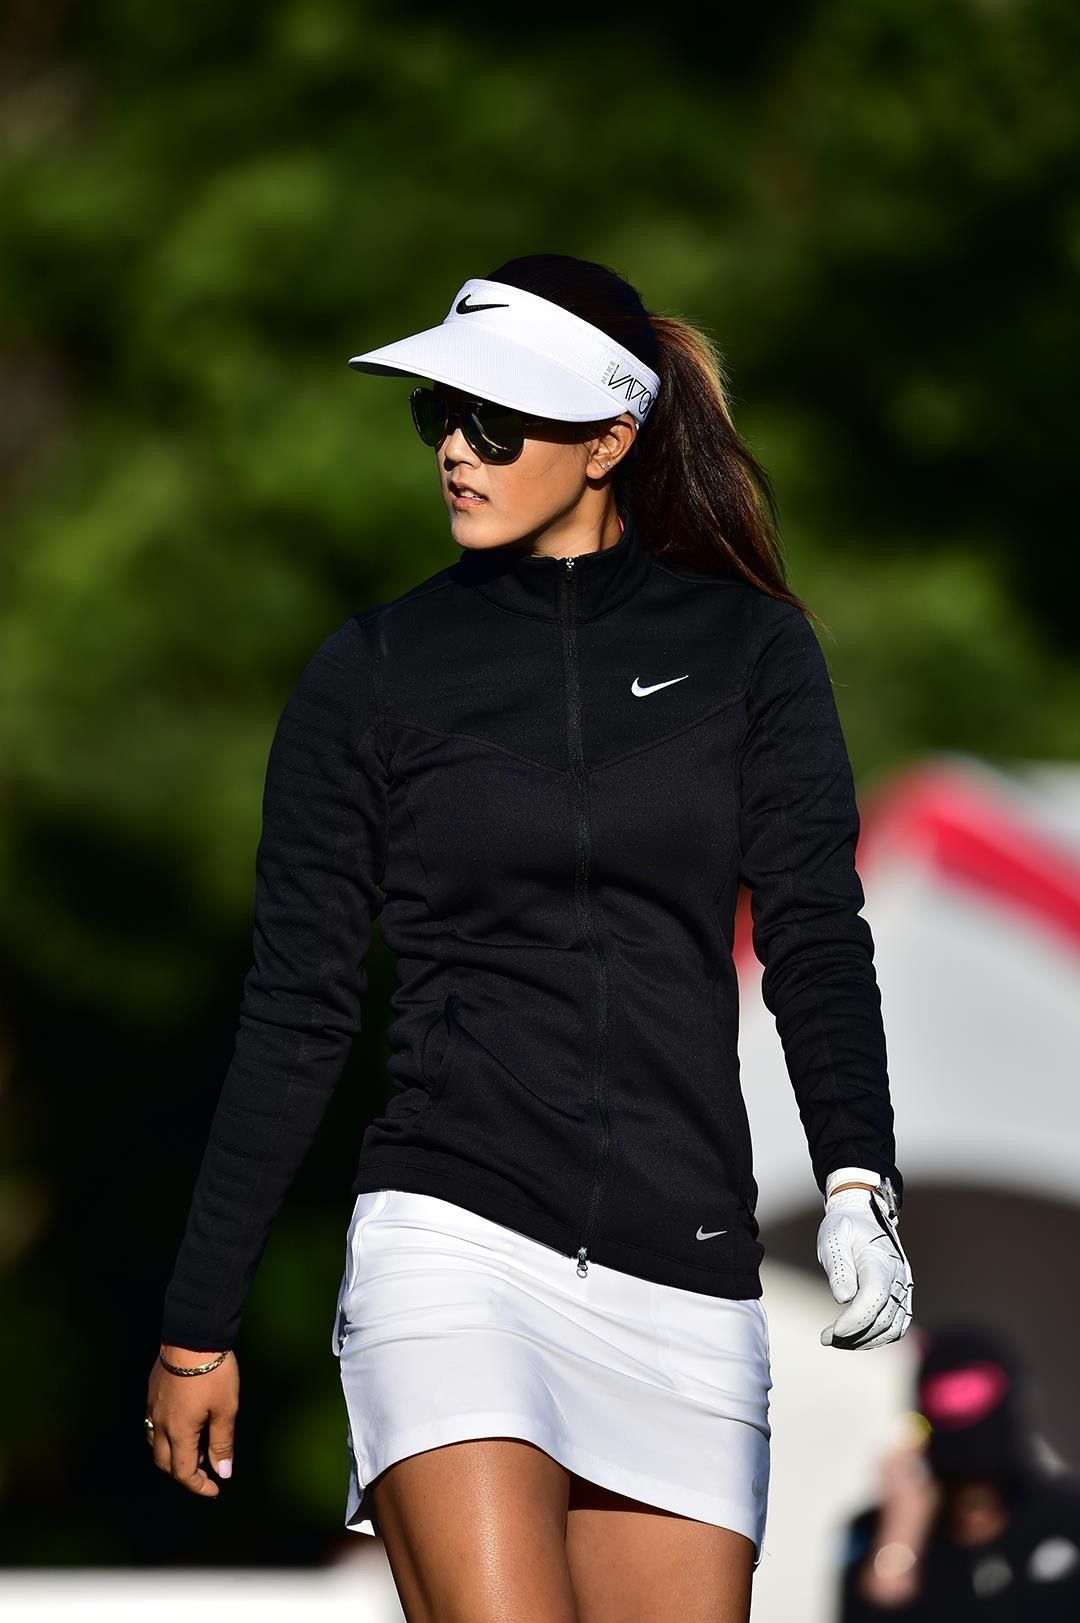 Sharon J Greene On Nike Shoes Golf Wear Golf Outfit